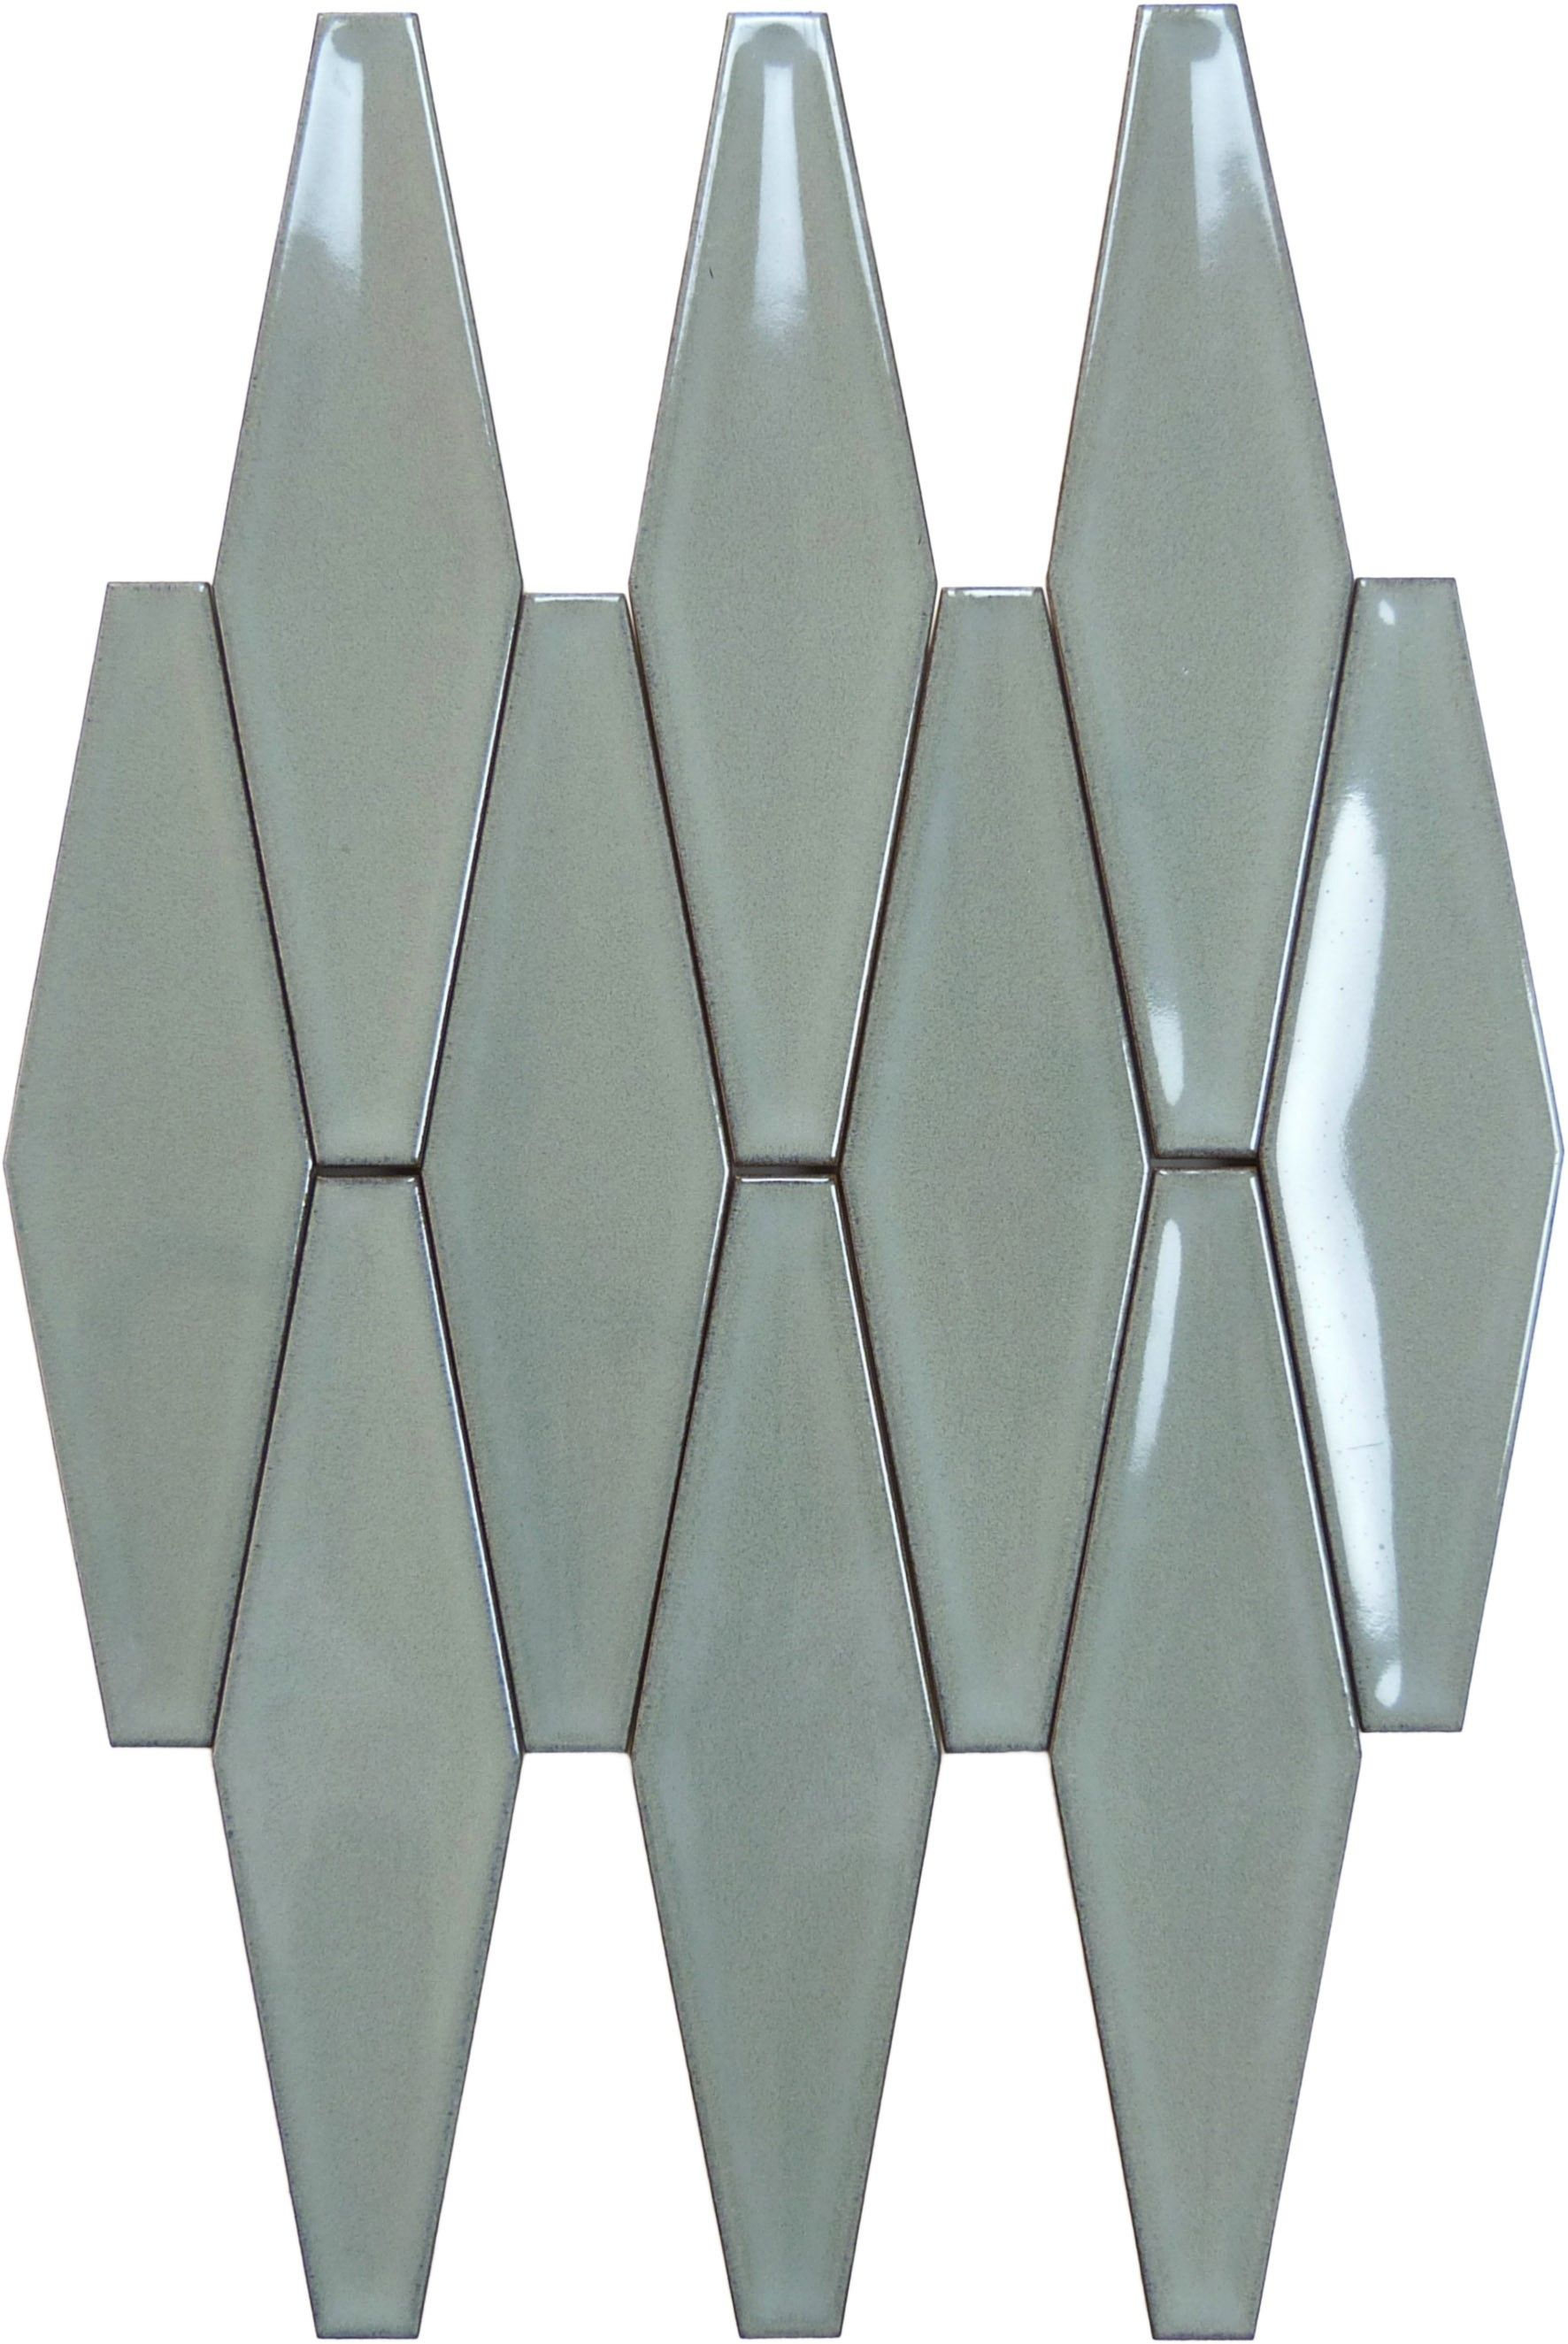 Tile Size 2 1 2 X 9 Tiles Per Sq Foot 10 Tile Thickness 1 4 Nominal Sold By The Square Foot Porcelain Tile Hexagon Decorative Wall Tiles